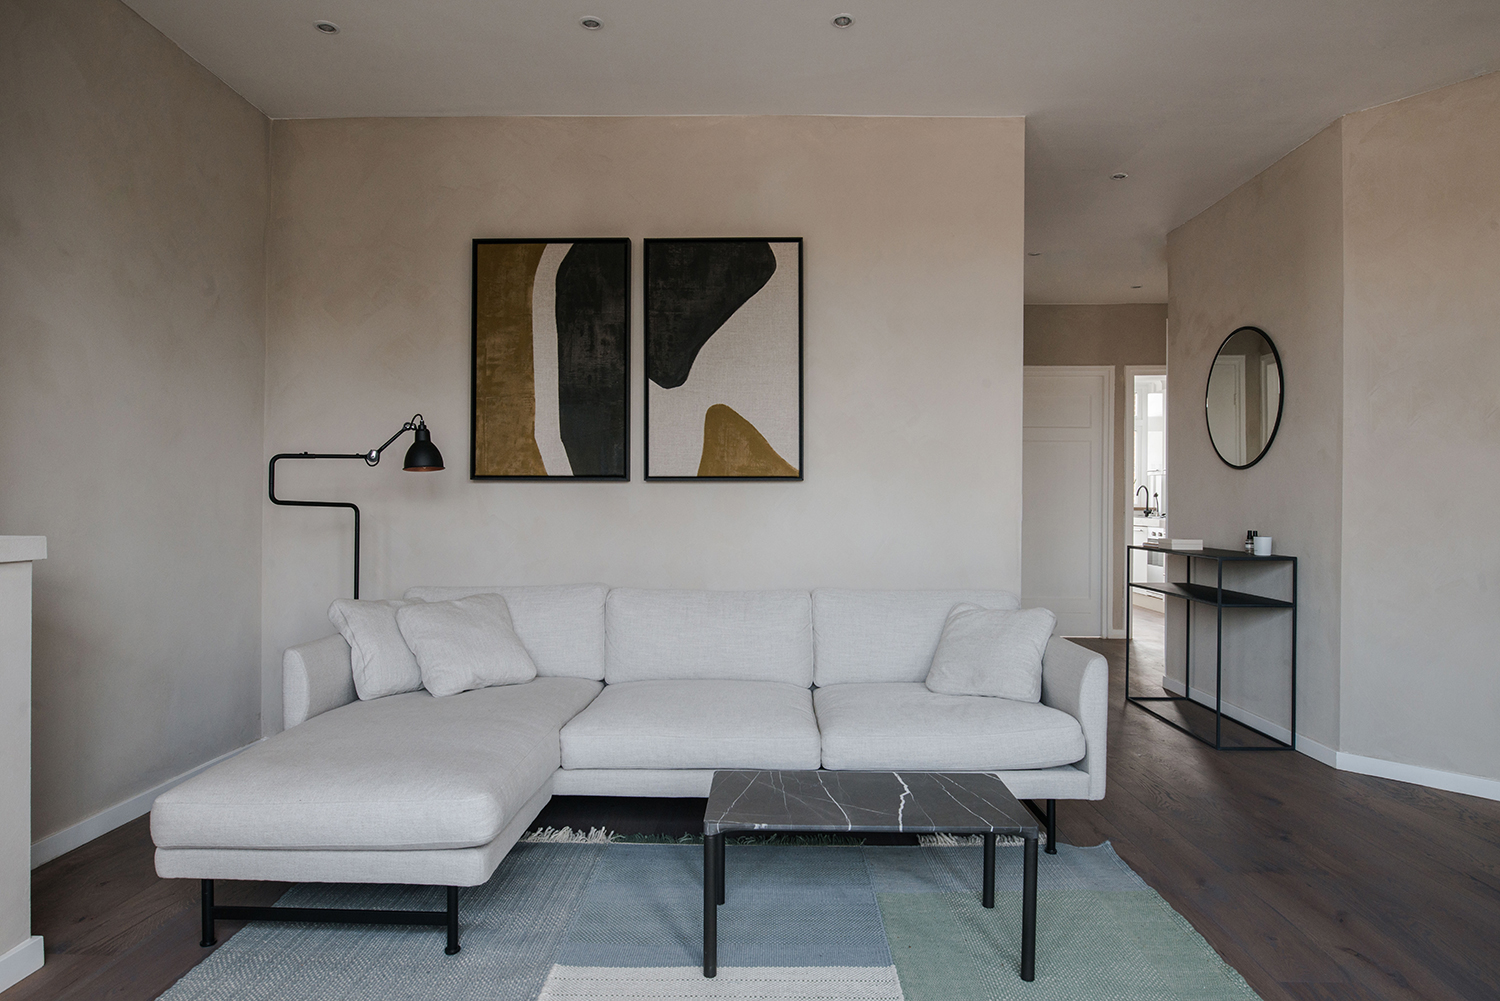 The Nieuw's Amsterdam apartment is a liveable showroom